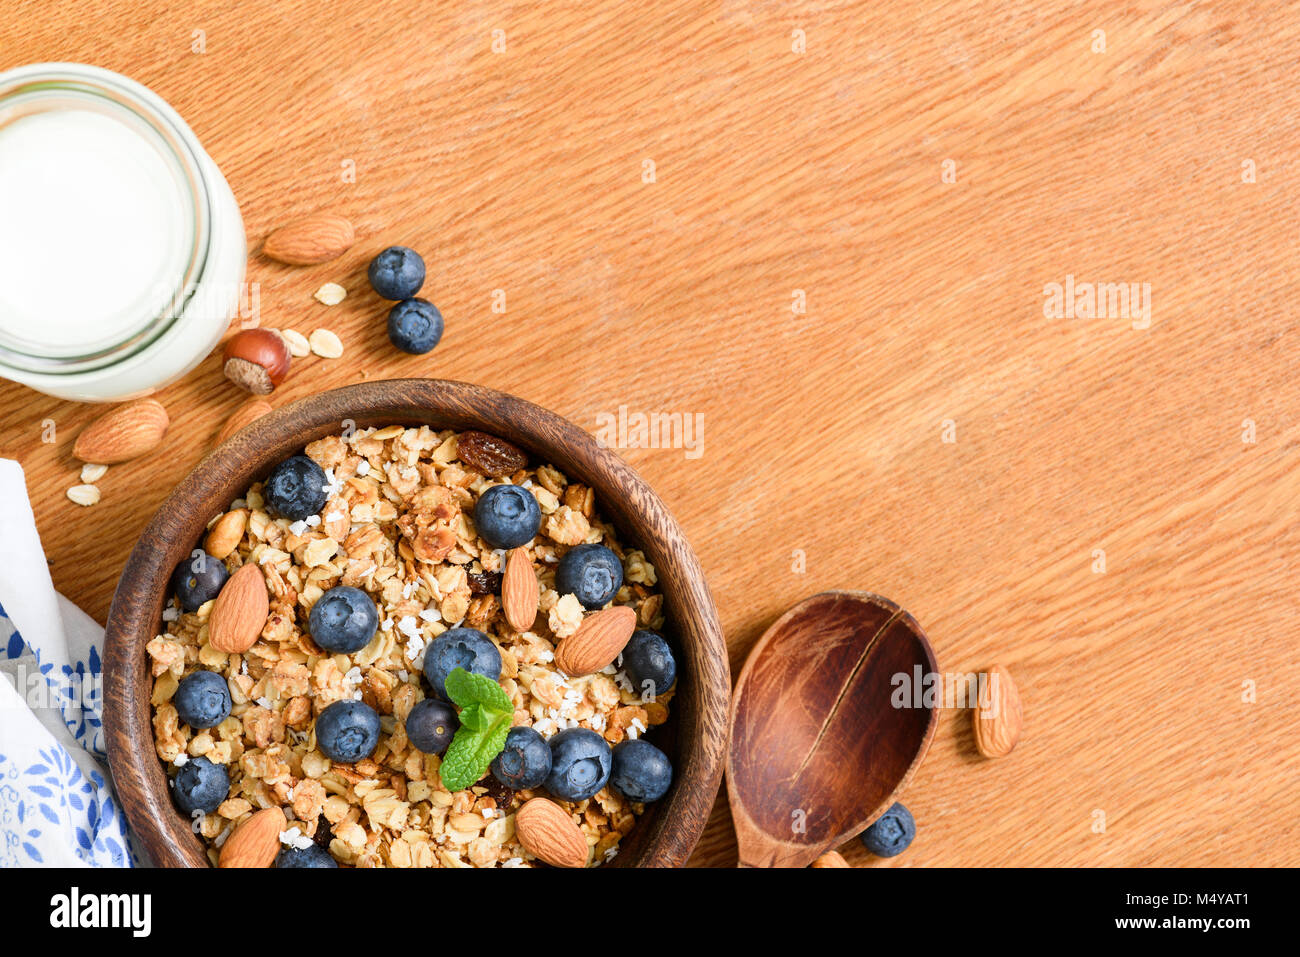 Granola with nuts and berries, milk on wooden table. Top view with copy space for text. Concept of weight loss diet, Stock Photo